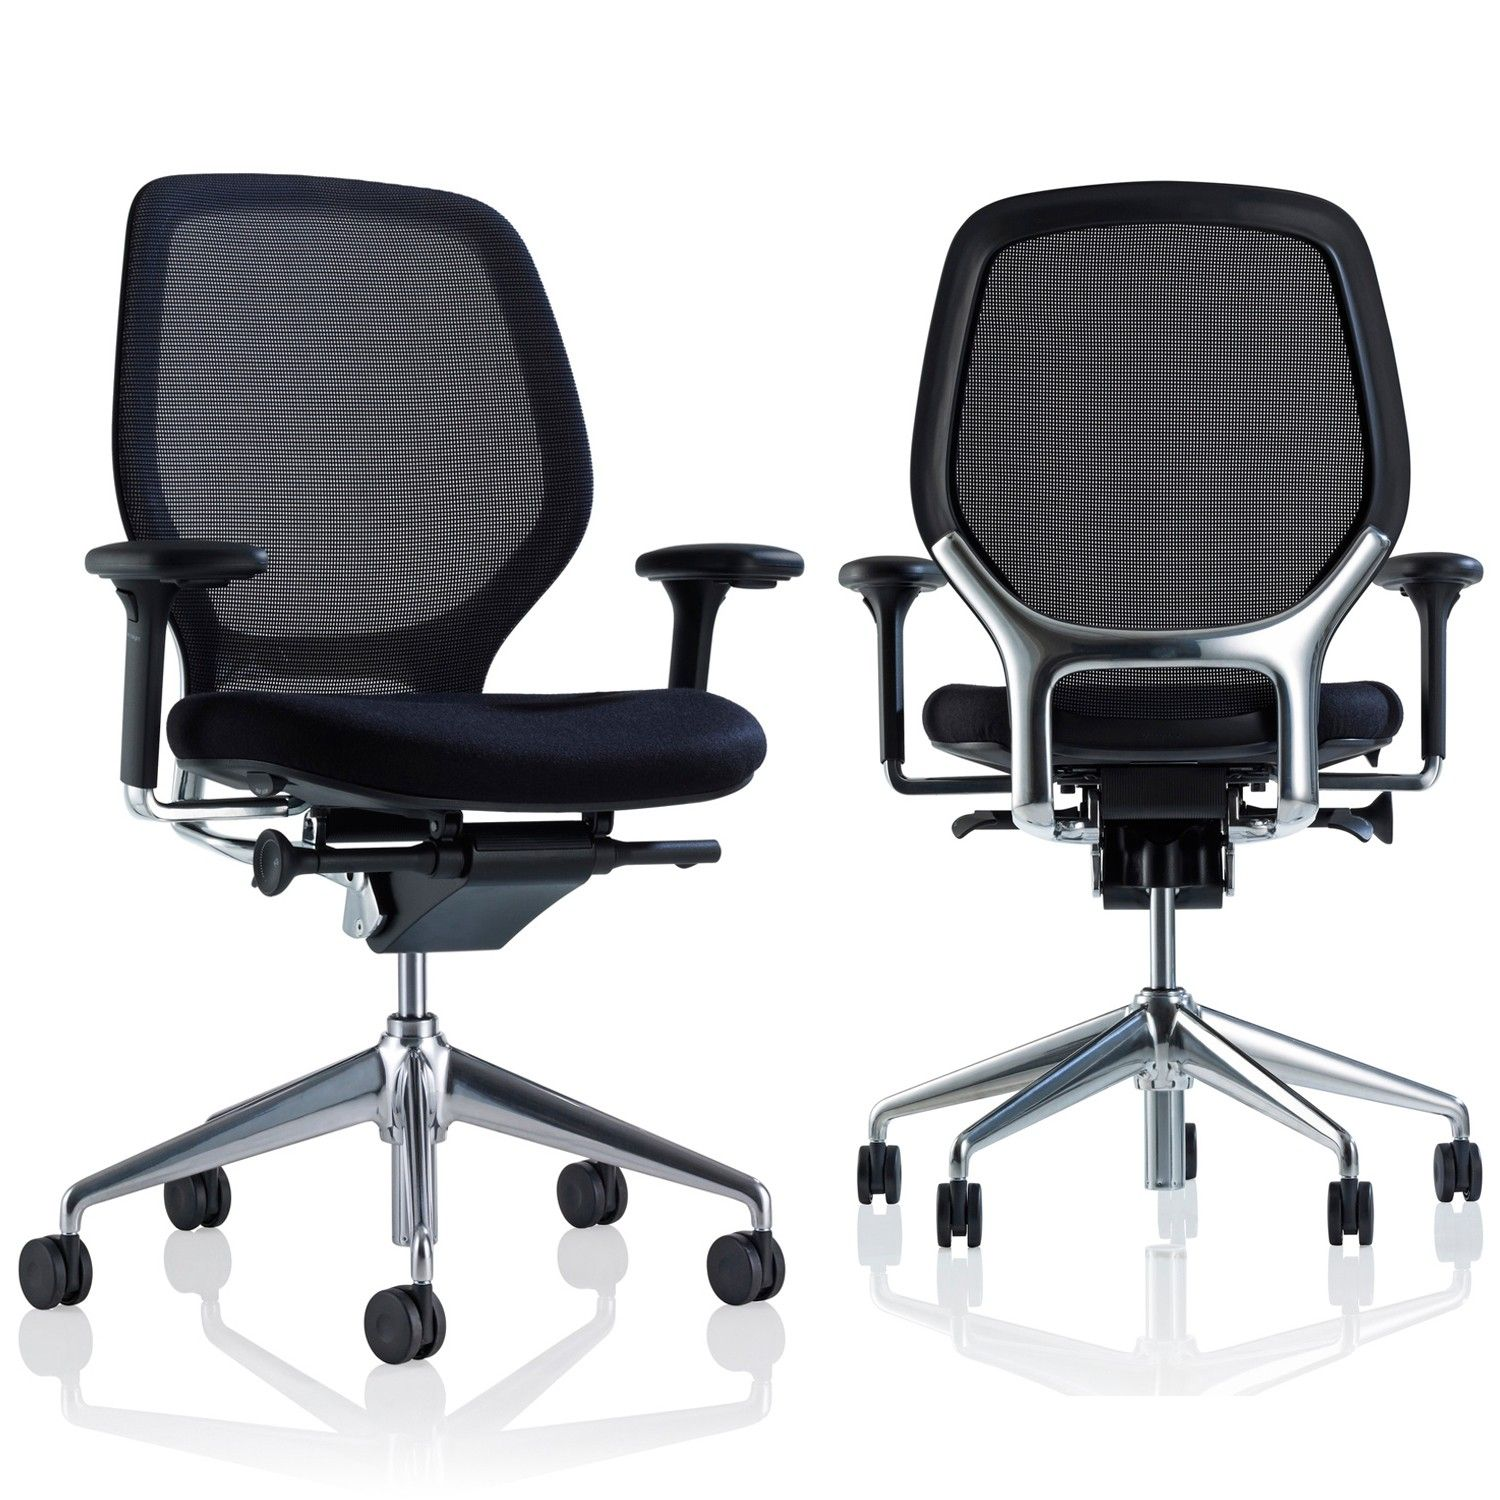 Ara Mesh Task Chairs were the first office chairs